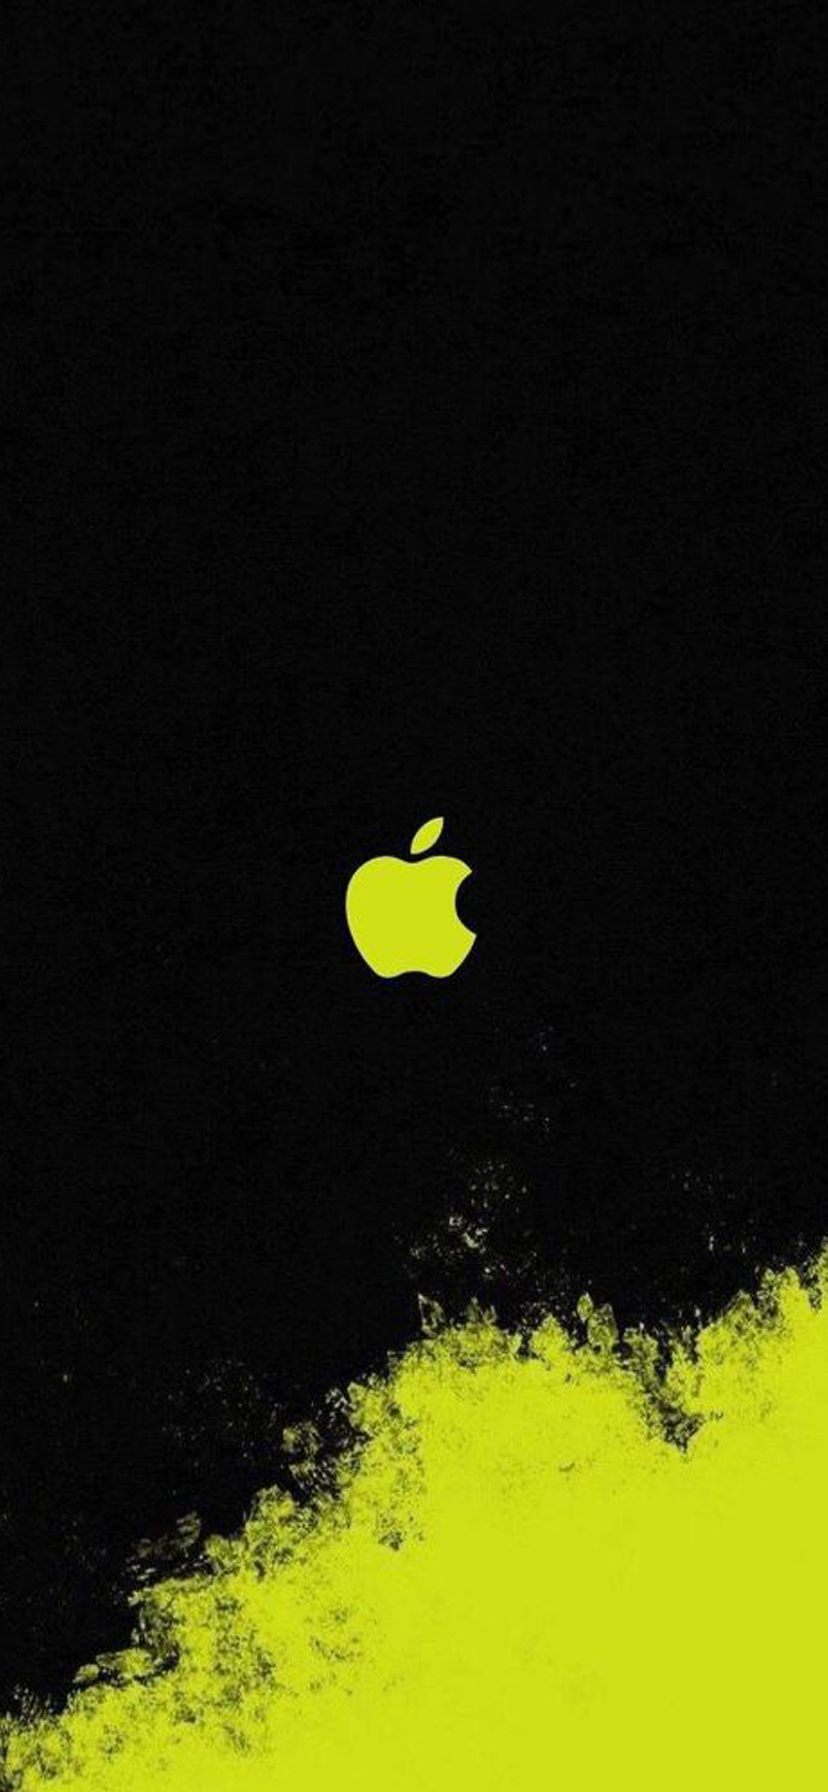 10 Alternative Wallpapers For Apple Iphone 11 10 Black And Yellow Art Apple Logo Hd Wallpapers Wallpapers Download High Resolution Wallpapers